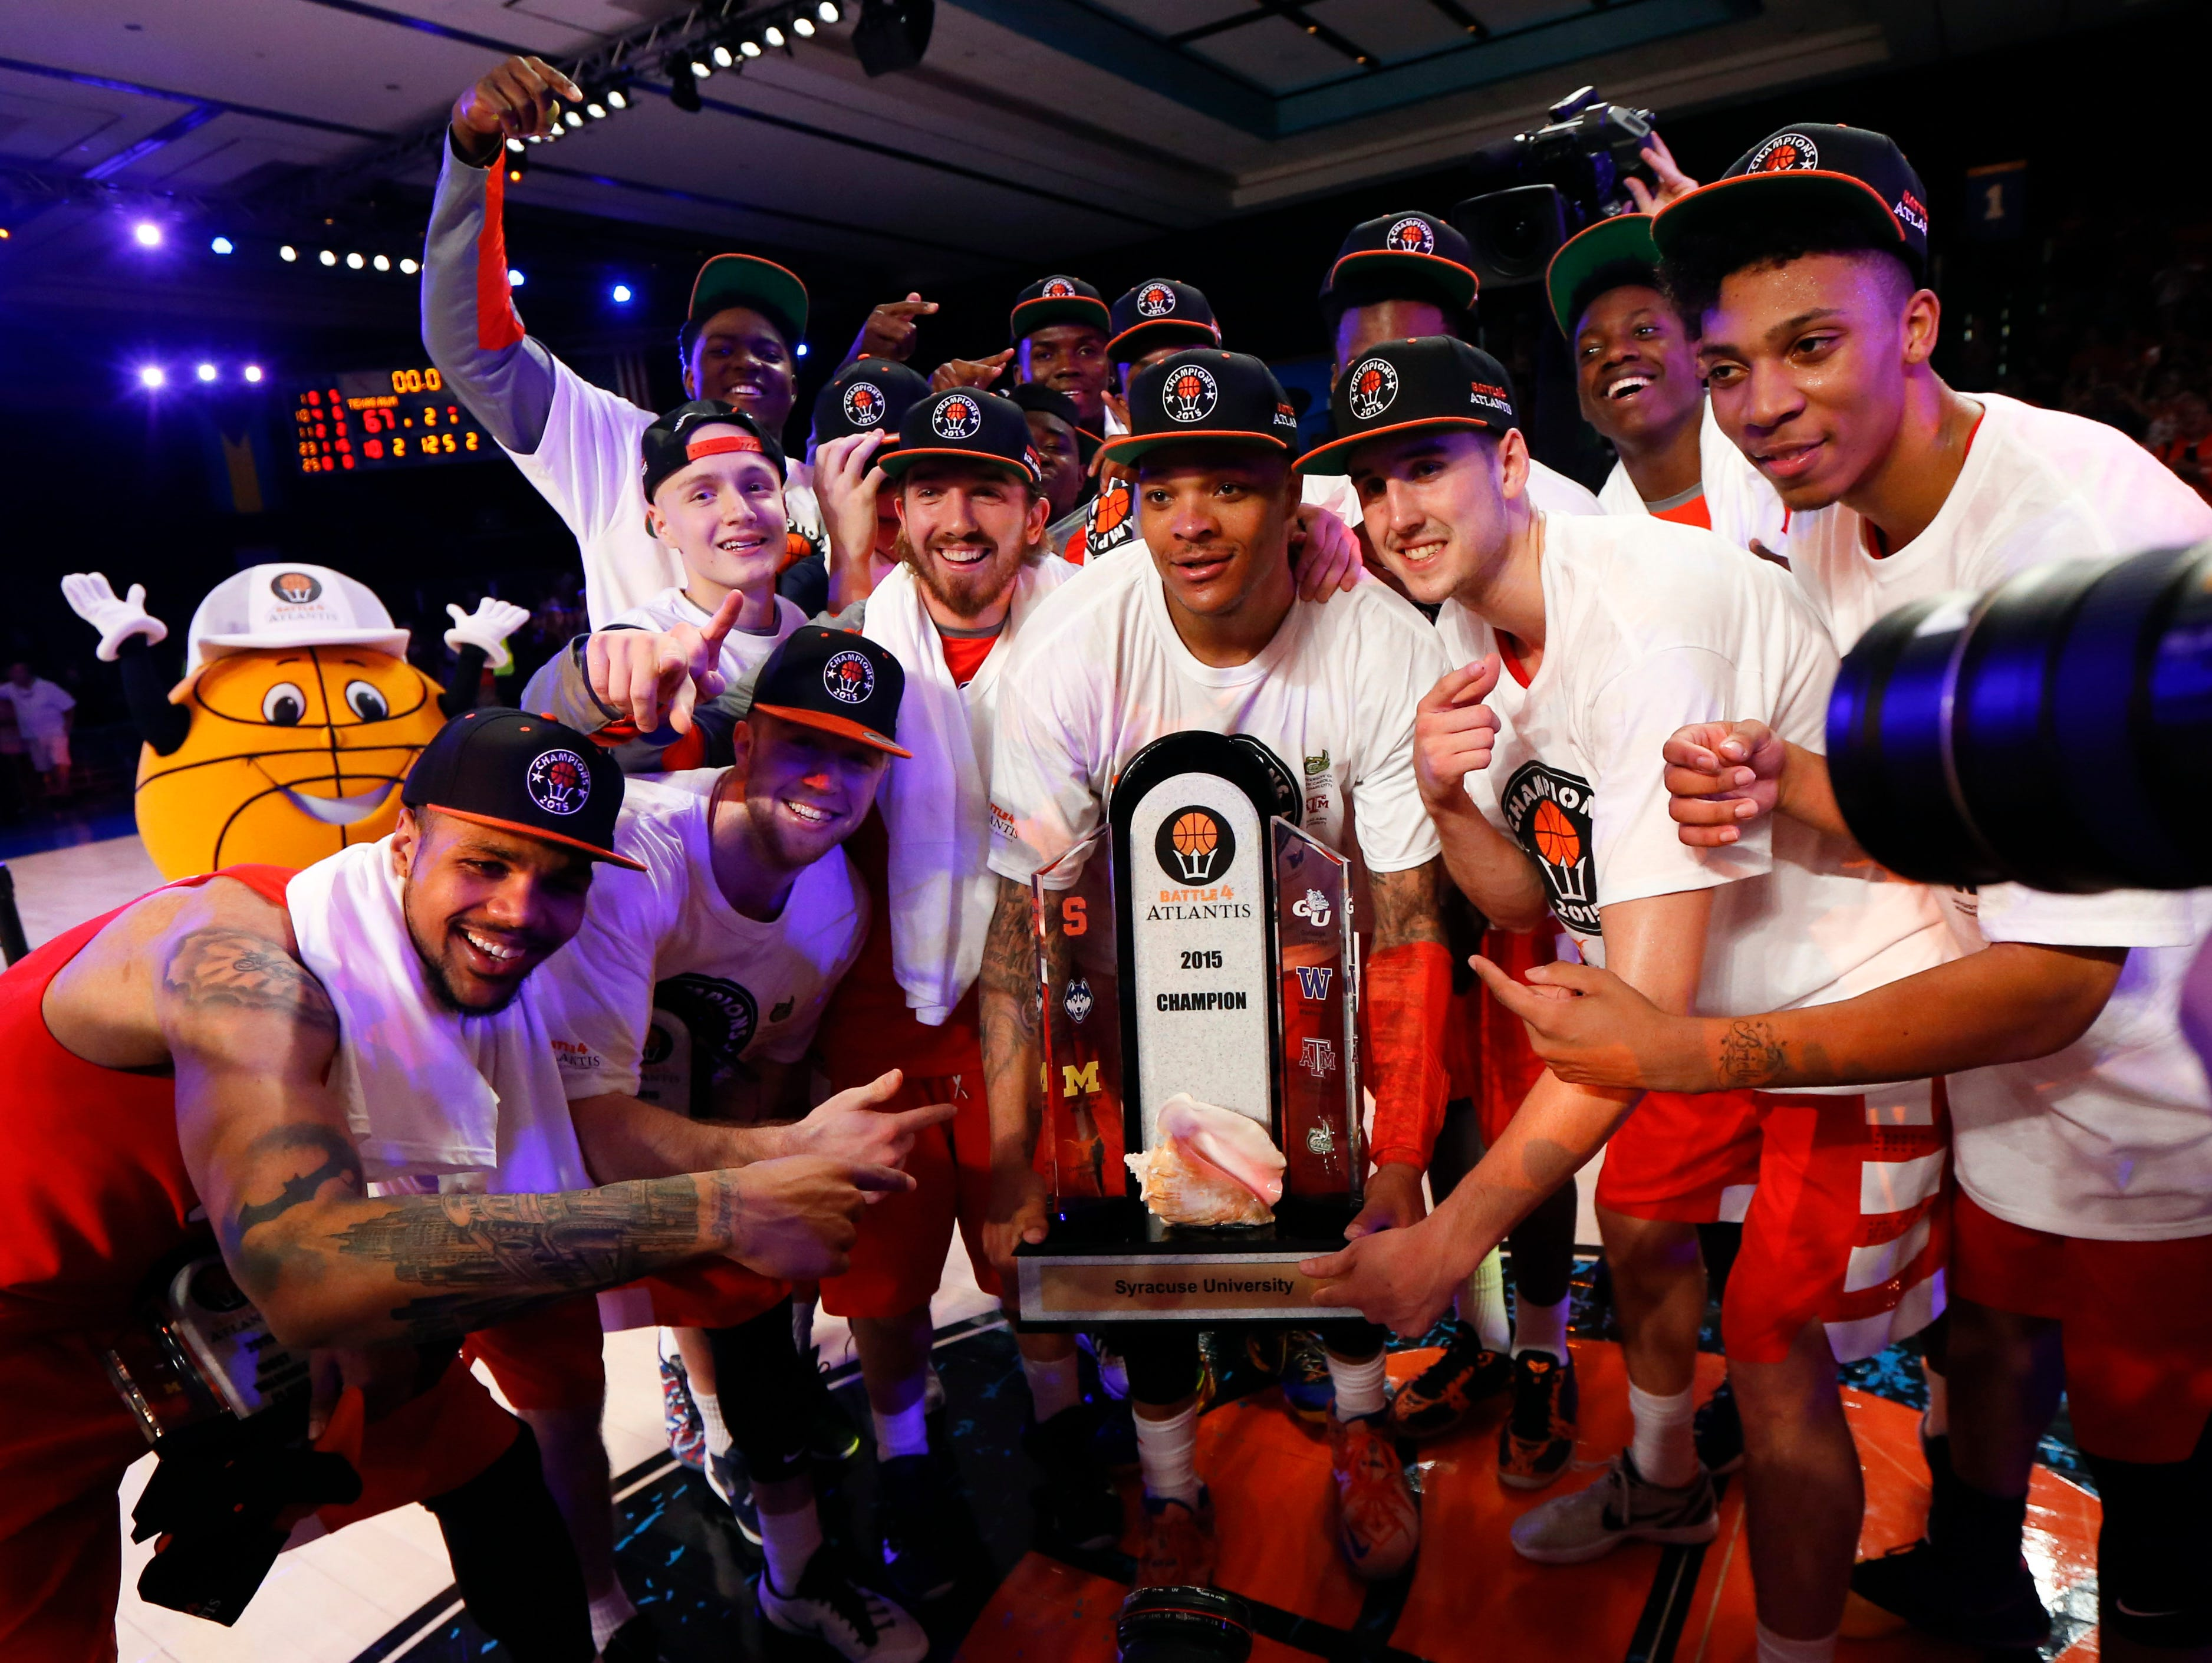 Syracuse Orange players celebrate winning the championship against the Texas A&M Aggies in the 2015 Battle 4 Atlantis championship.